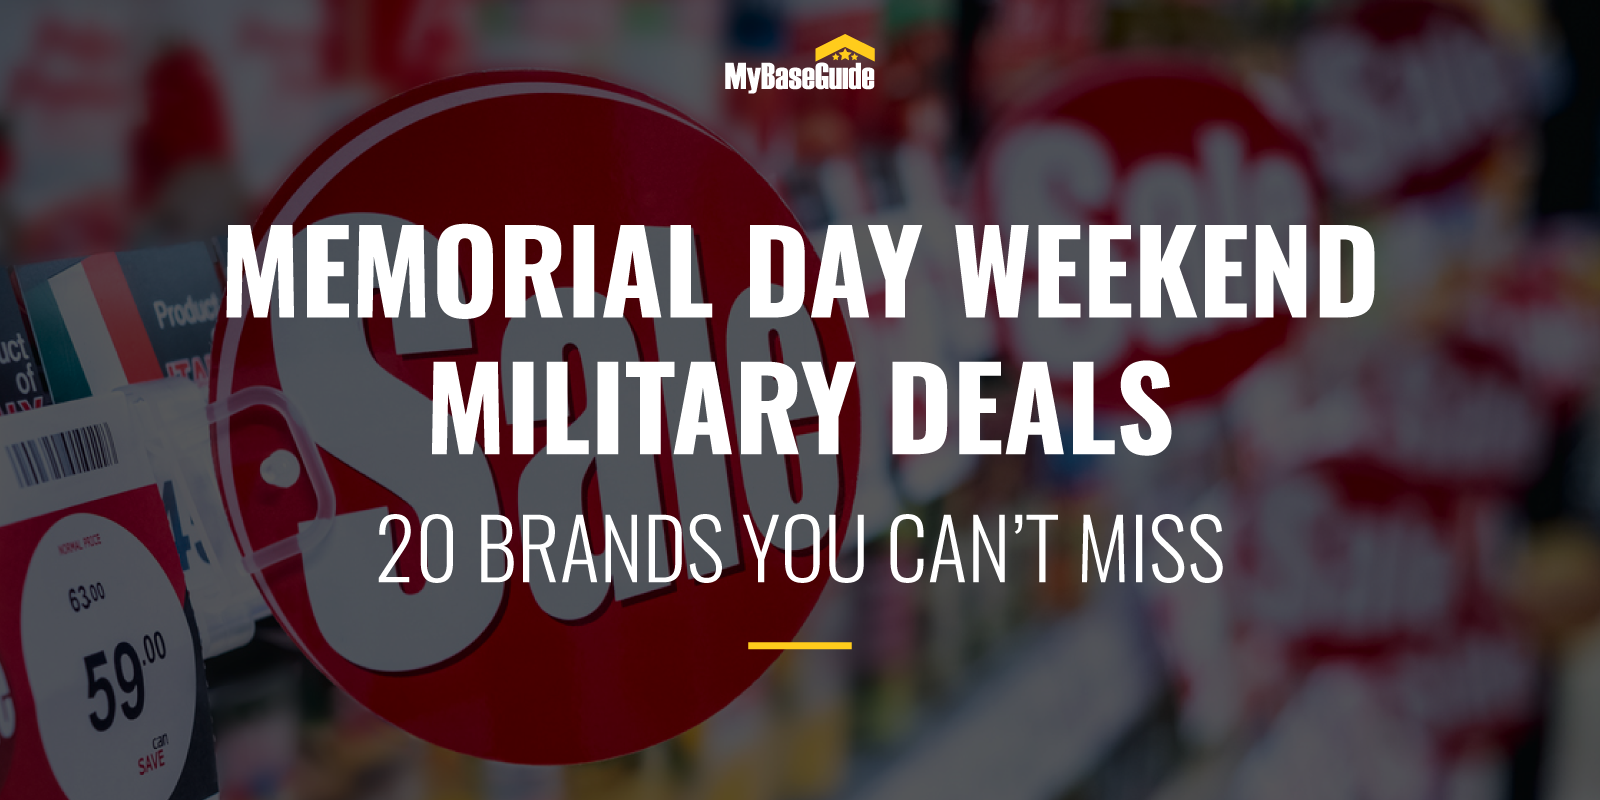 Memorial Day Weekend Military Deals